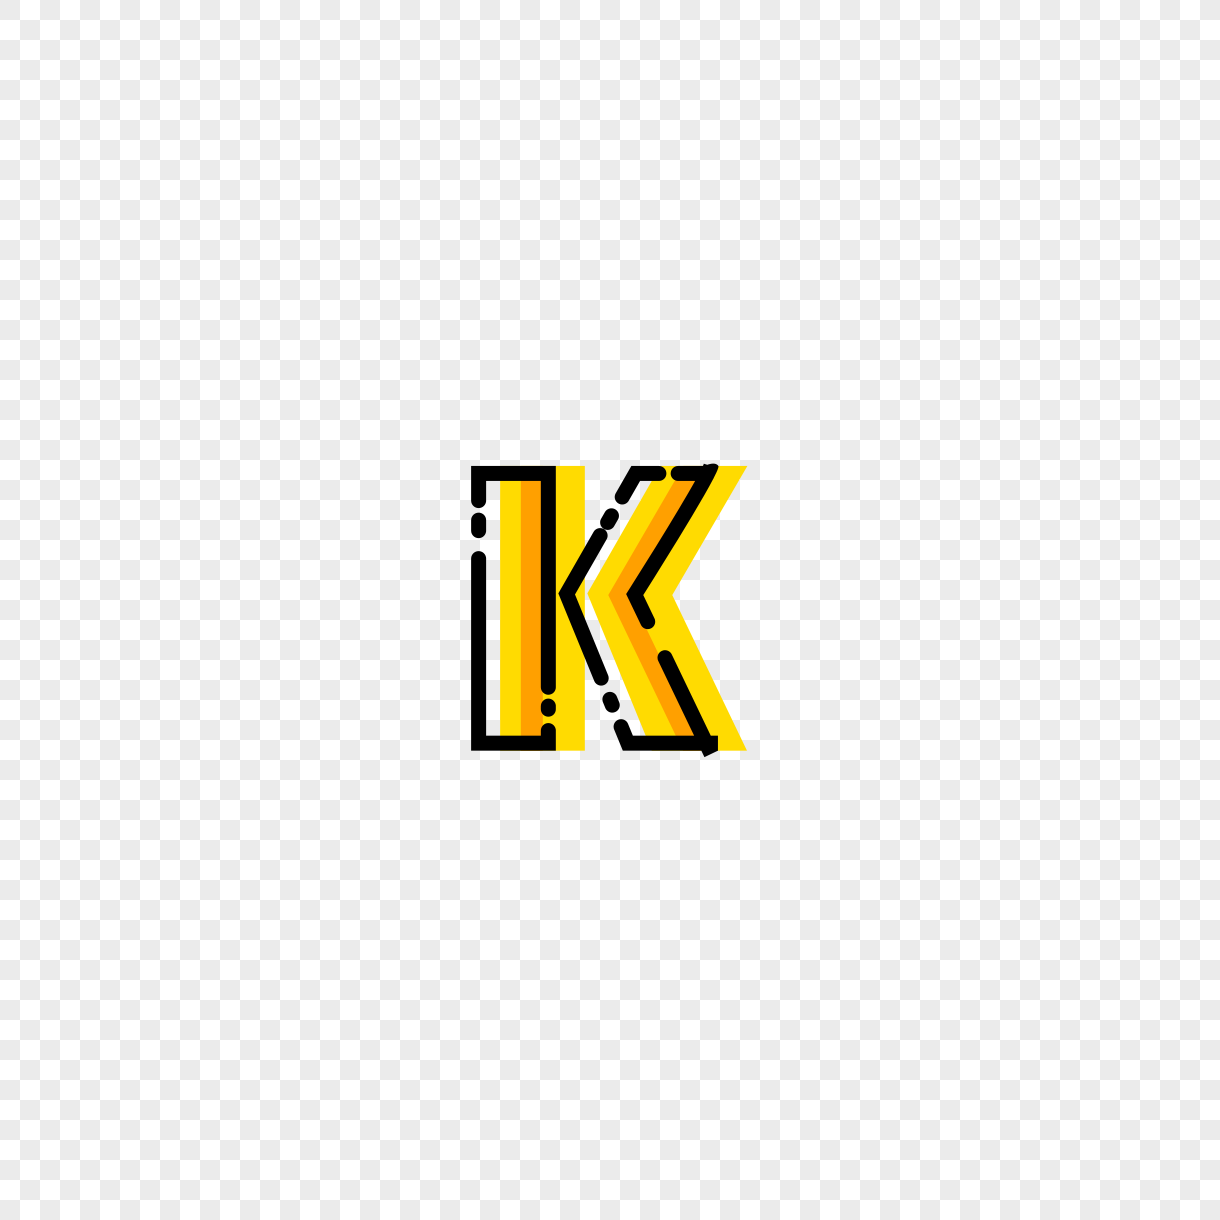 English Letter K Font Design Png Image Picture Free Download